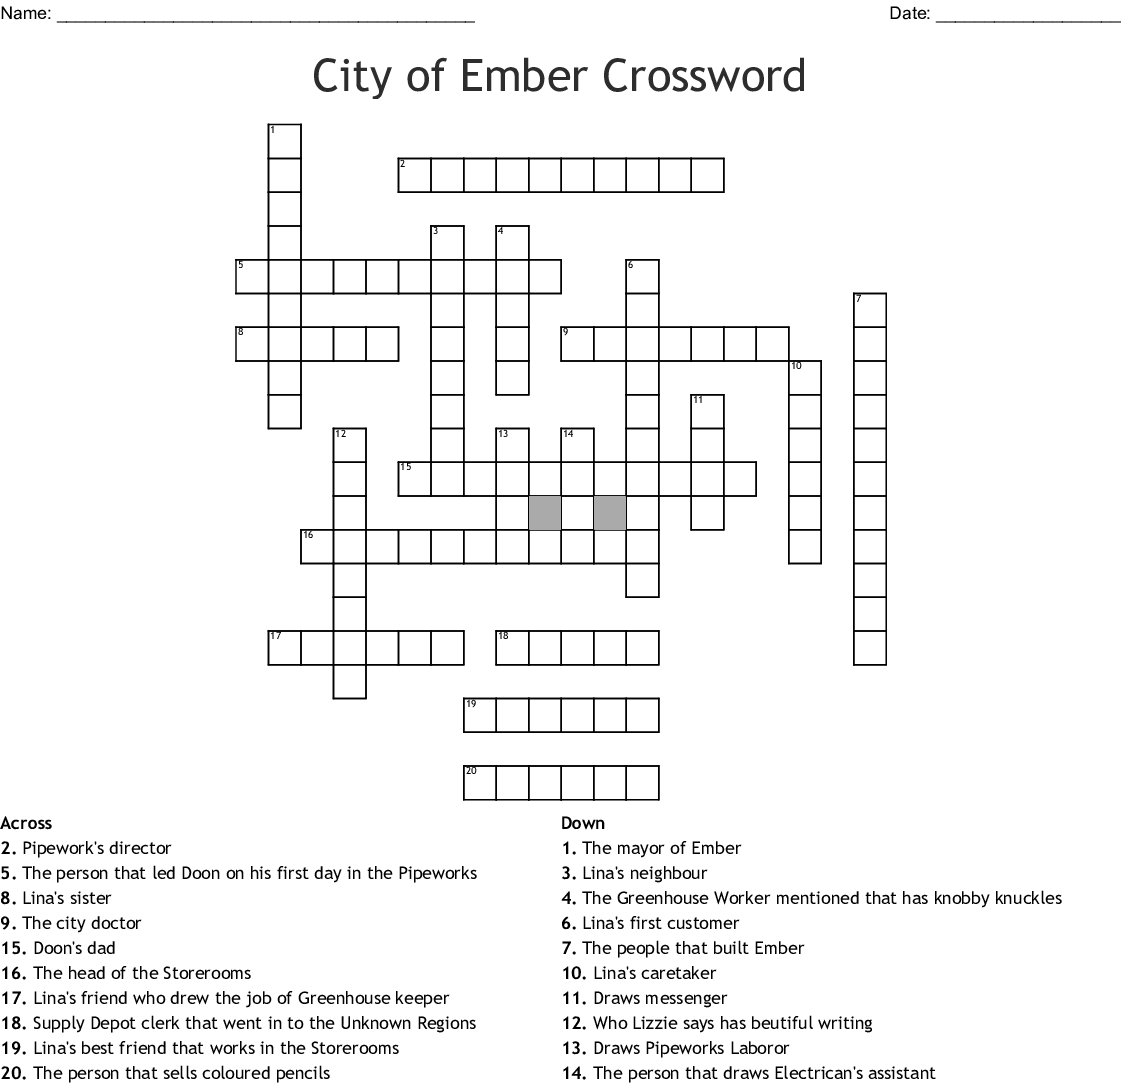 The City Of Ember Crossword Puzzle